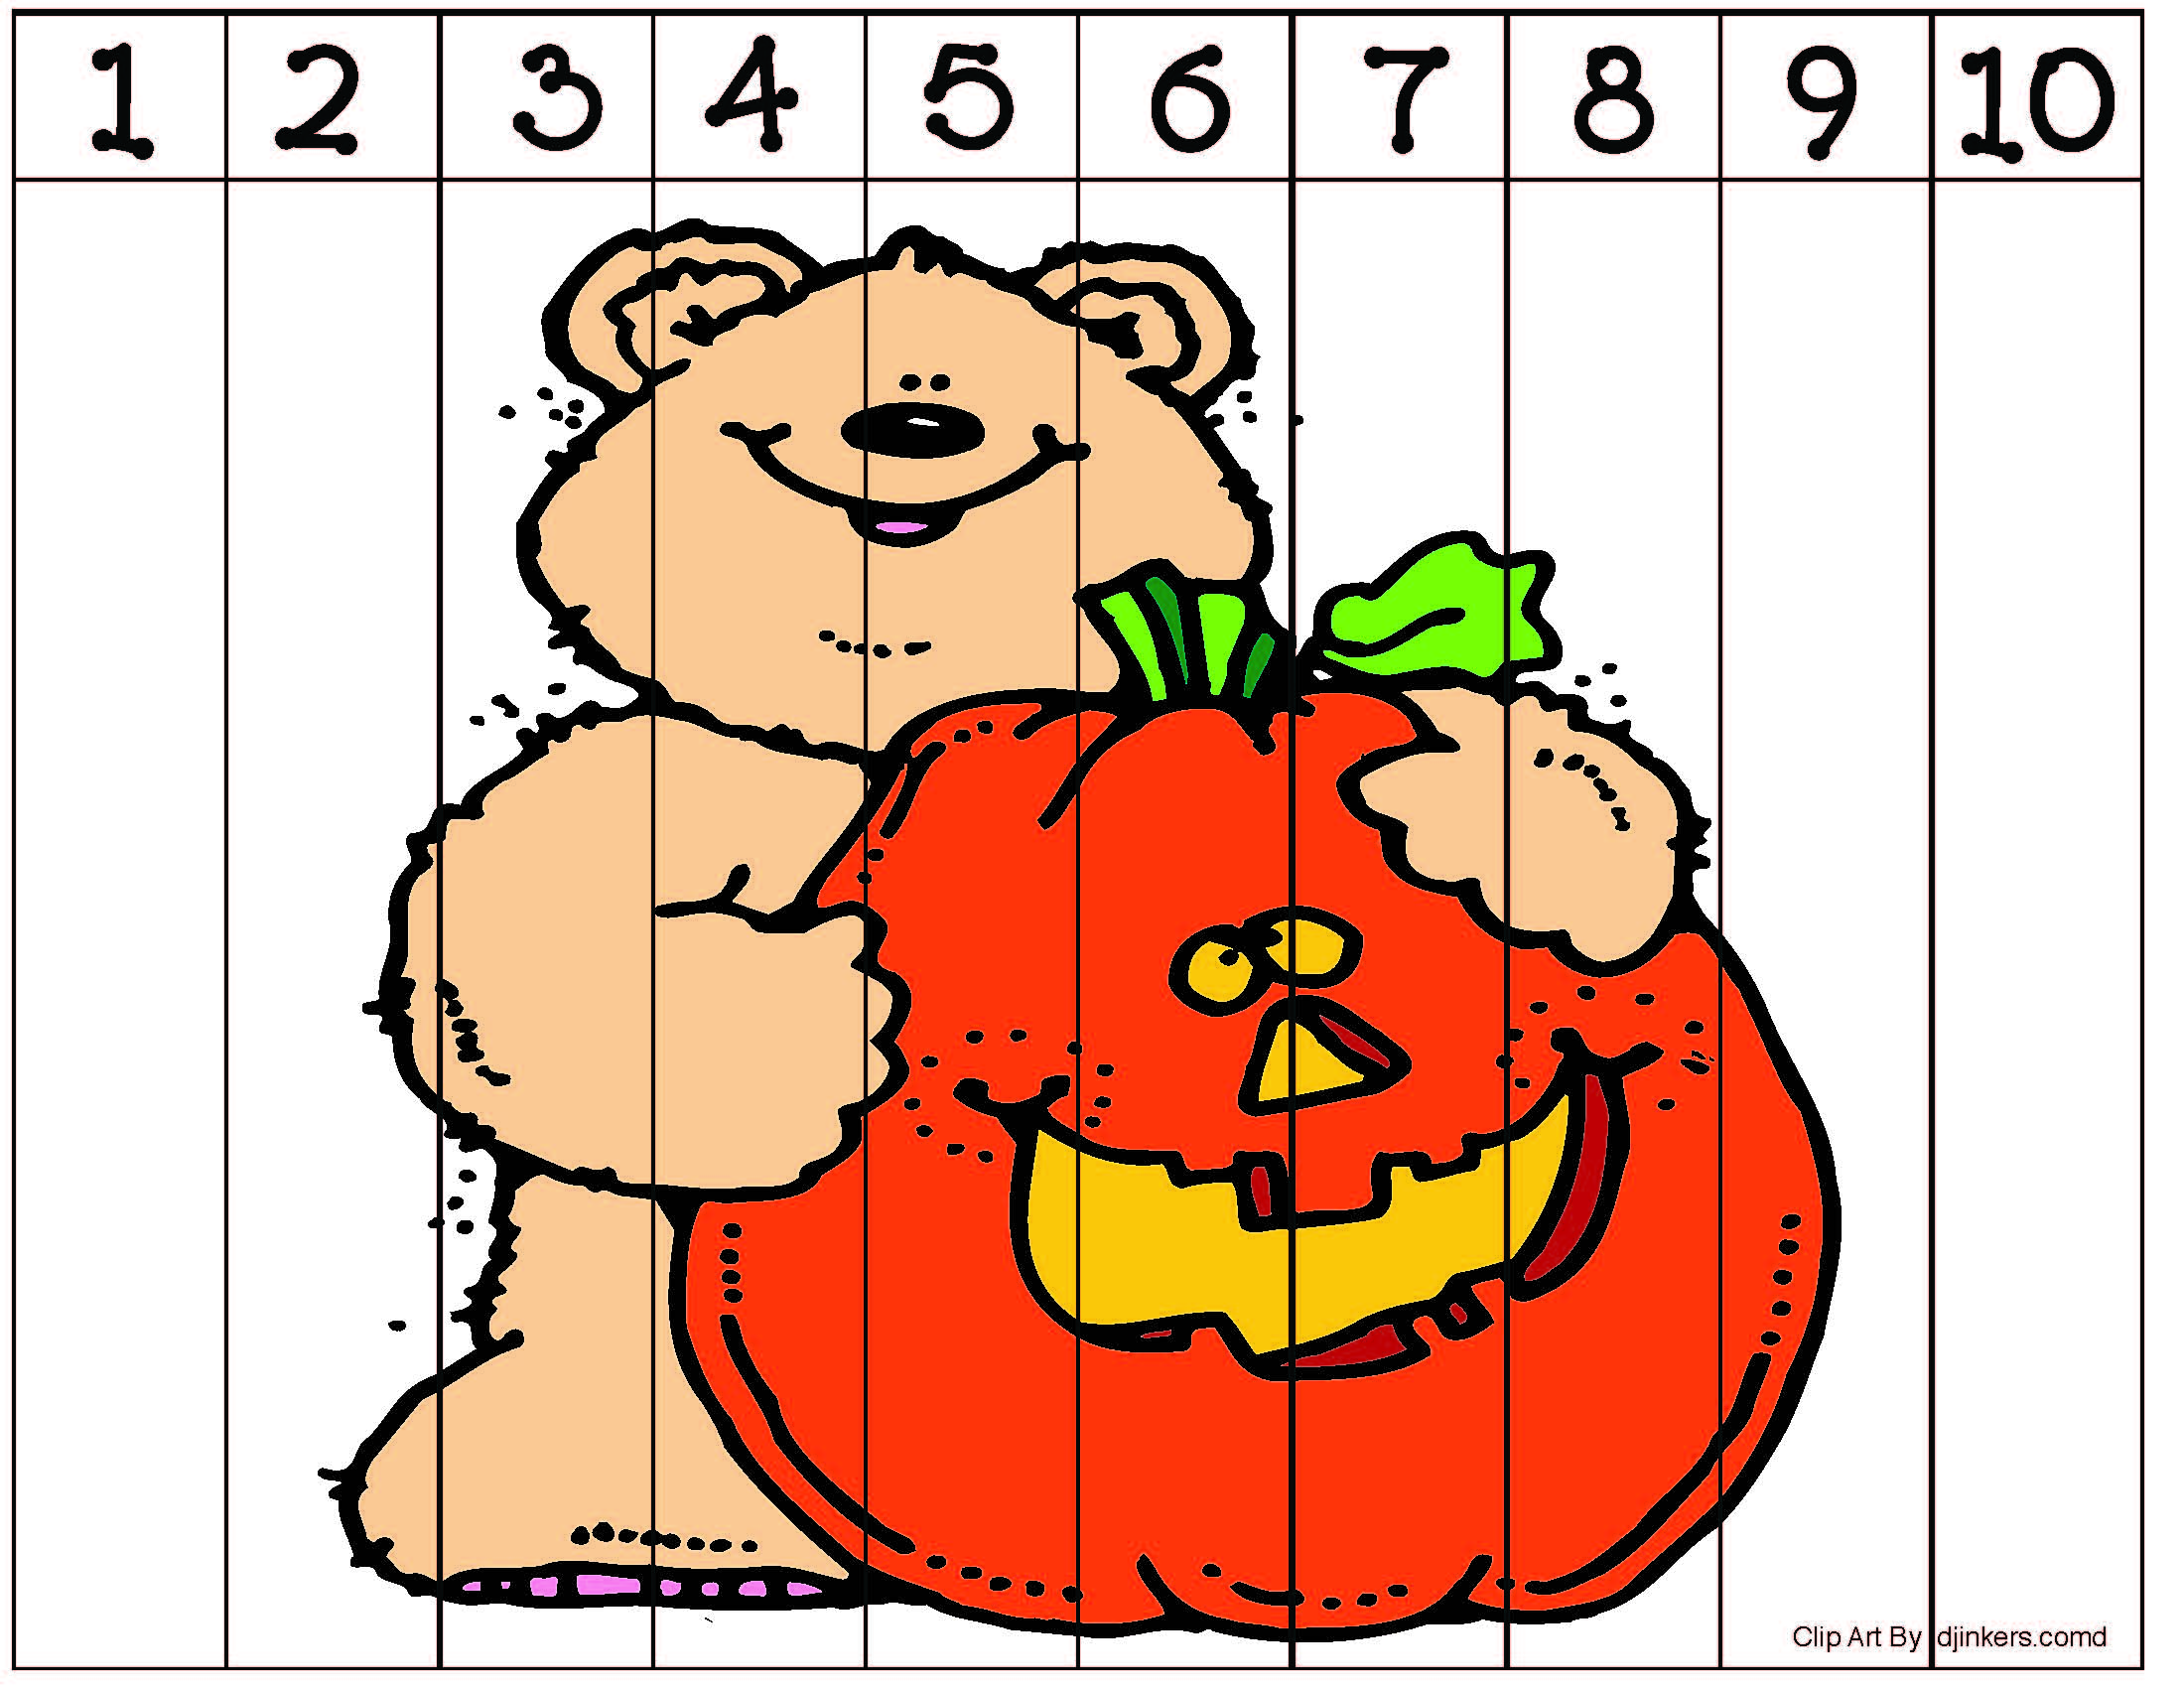 number puzzles, math centers, sequencing numbers, counting activities, skip counting by 10's, activities for skip counting by 10's, pumpkin activities, bat activities, Halloween activities, scarecrow activities, fall puzzles, Halloween games, Halloween puzzles, puzzle pictures, number strip puzzles, leaf puzzles, pumpkin puzzles, leaf activities